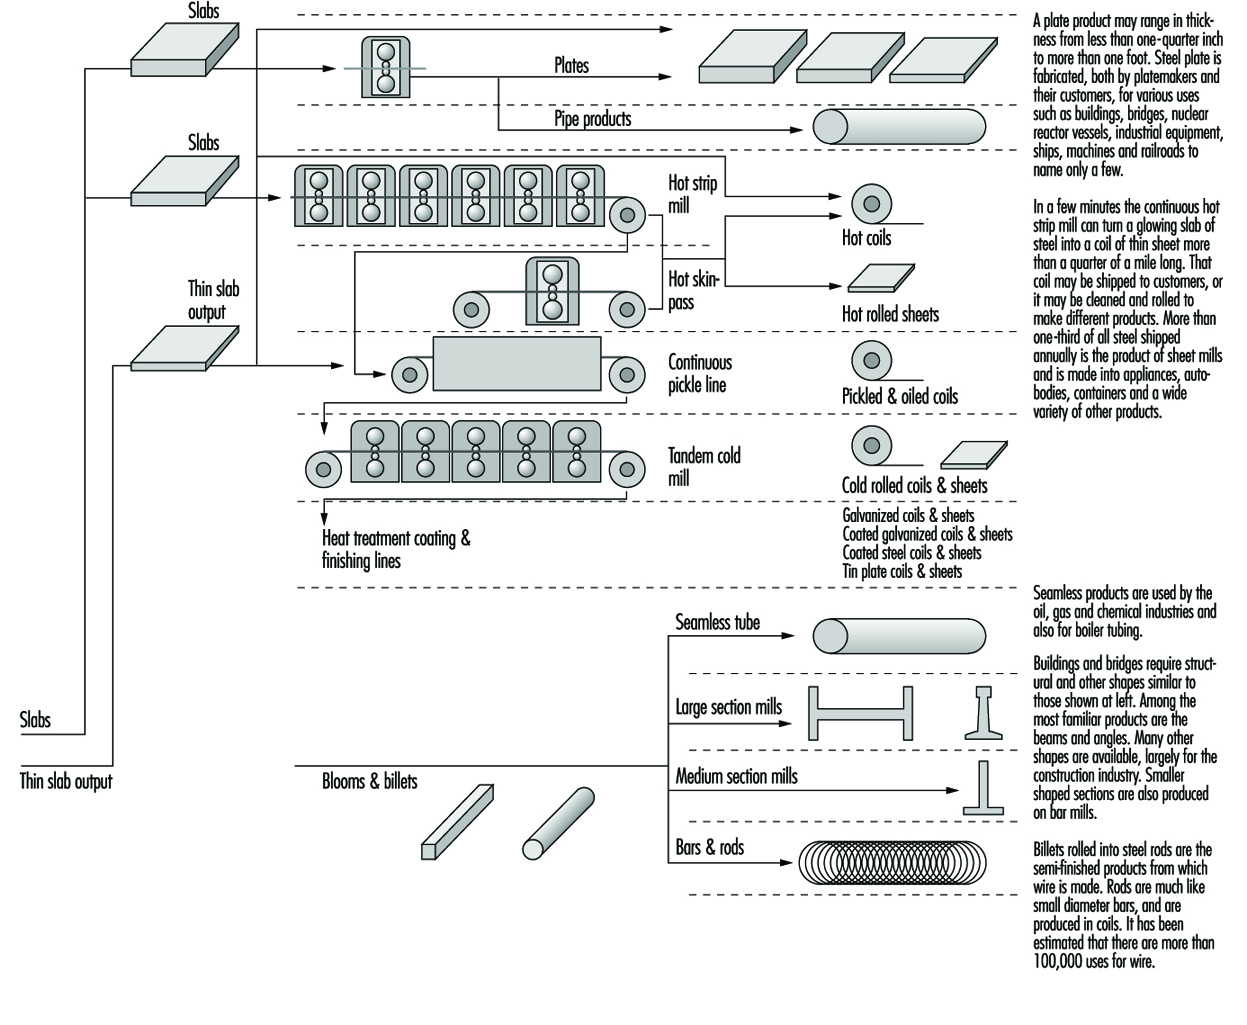 Rolling Mills Nuclear Power Plant Flow Diagram Iro020f1